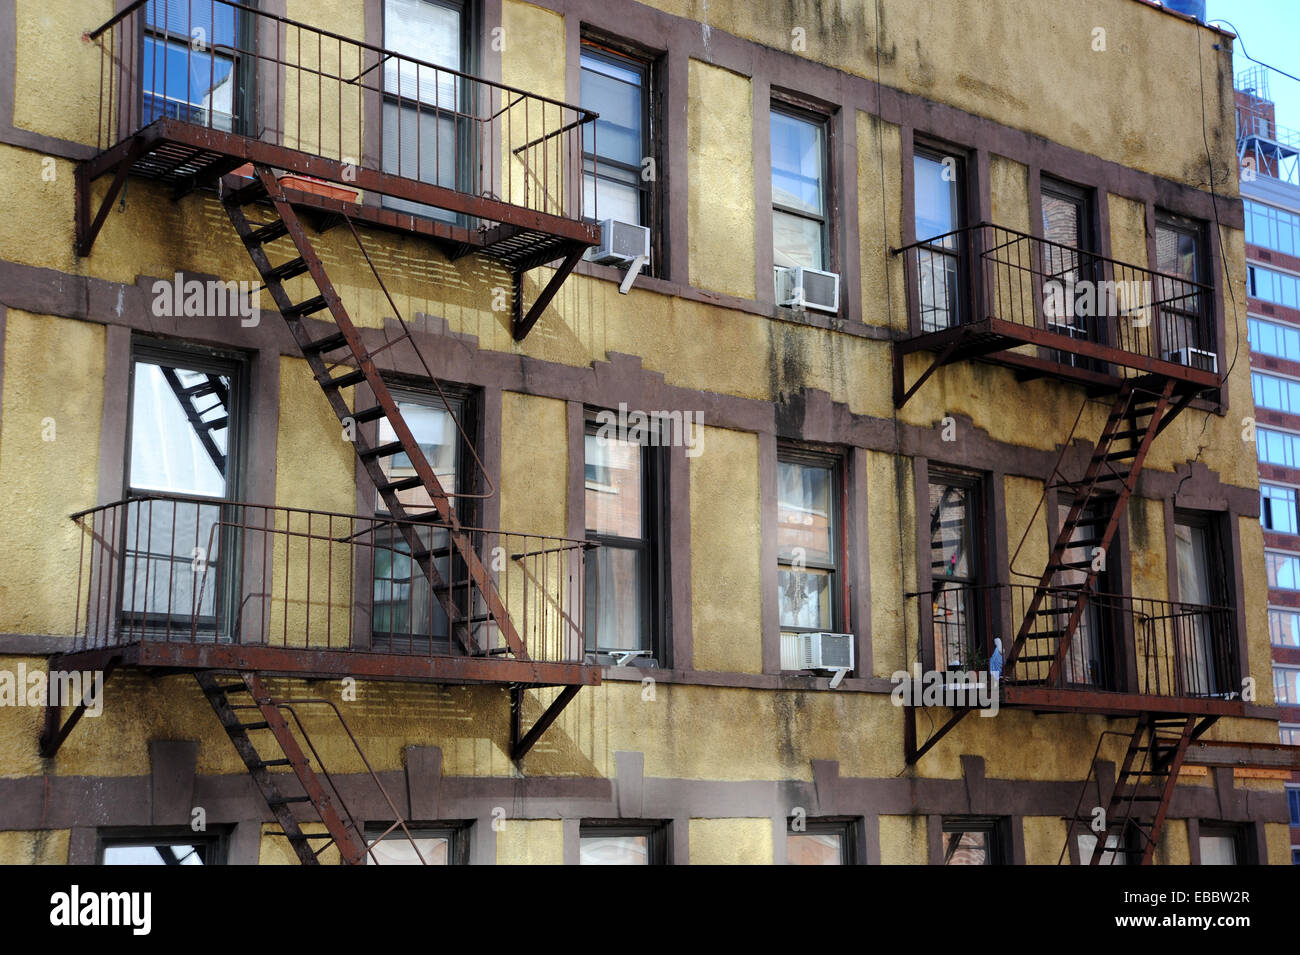 Manhattan New York Usa A View Of Fire Escapes On Old Apartment Stock Photo Royalty Free Image